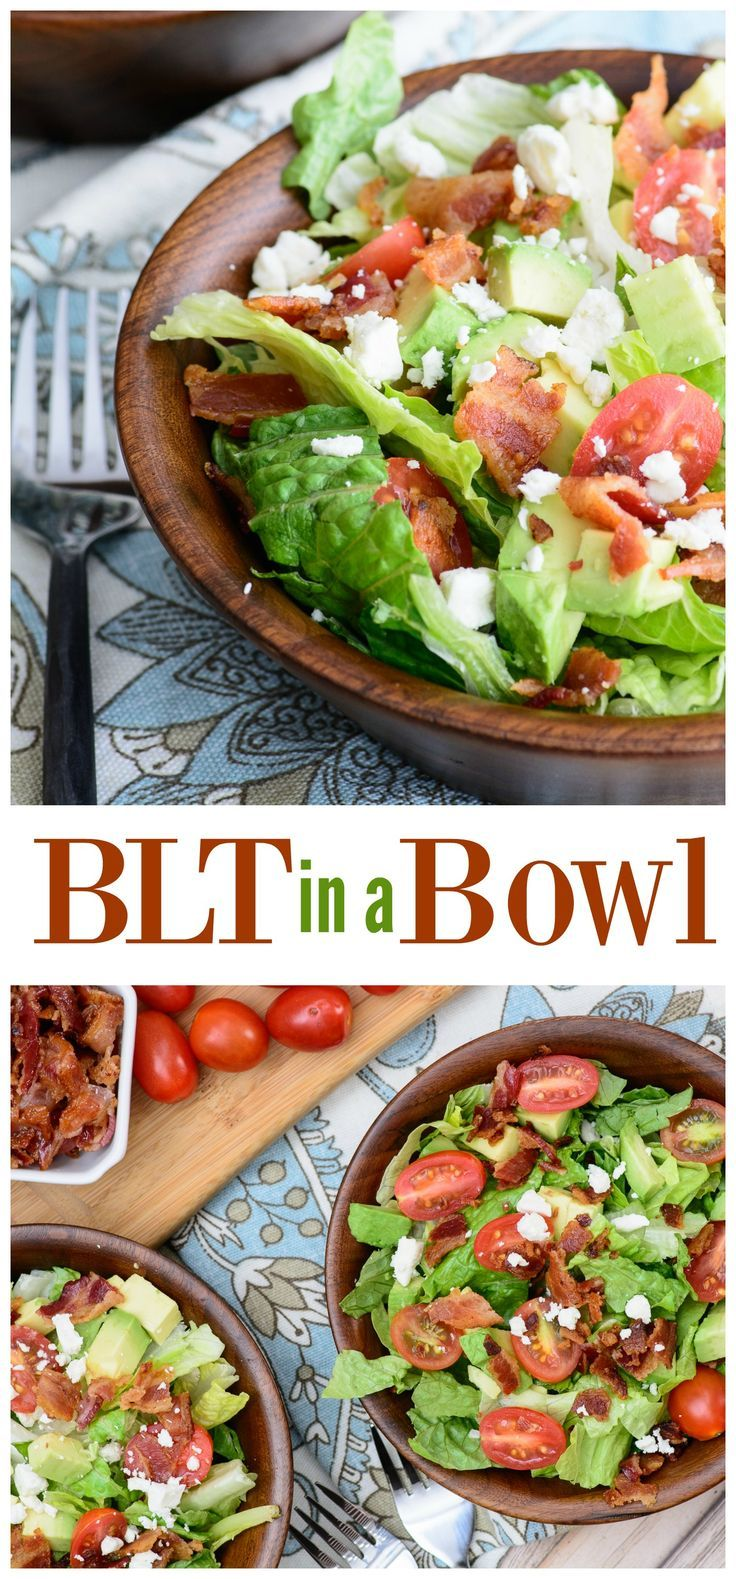 This salad recipe has all the robust flavor of a BLT without the carbs! This paleo, gluten free and low-carb recipe is so delicious, you won't even miss the bread!